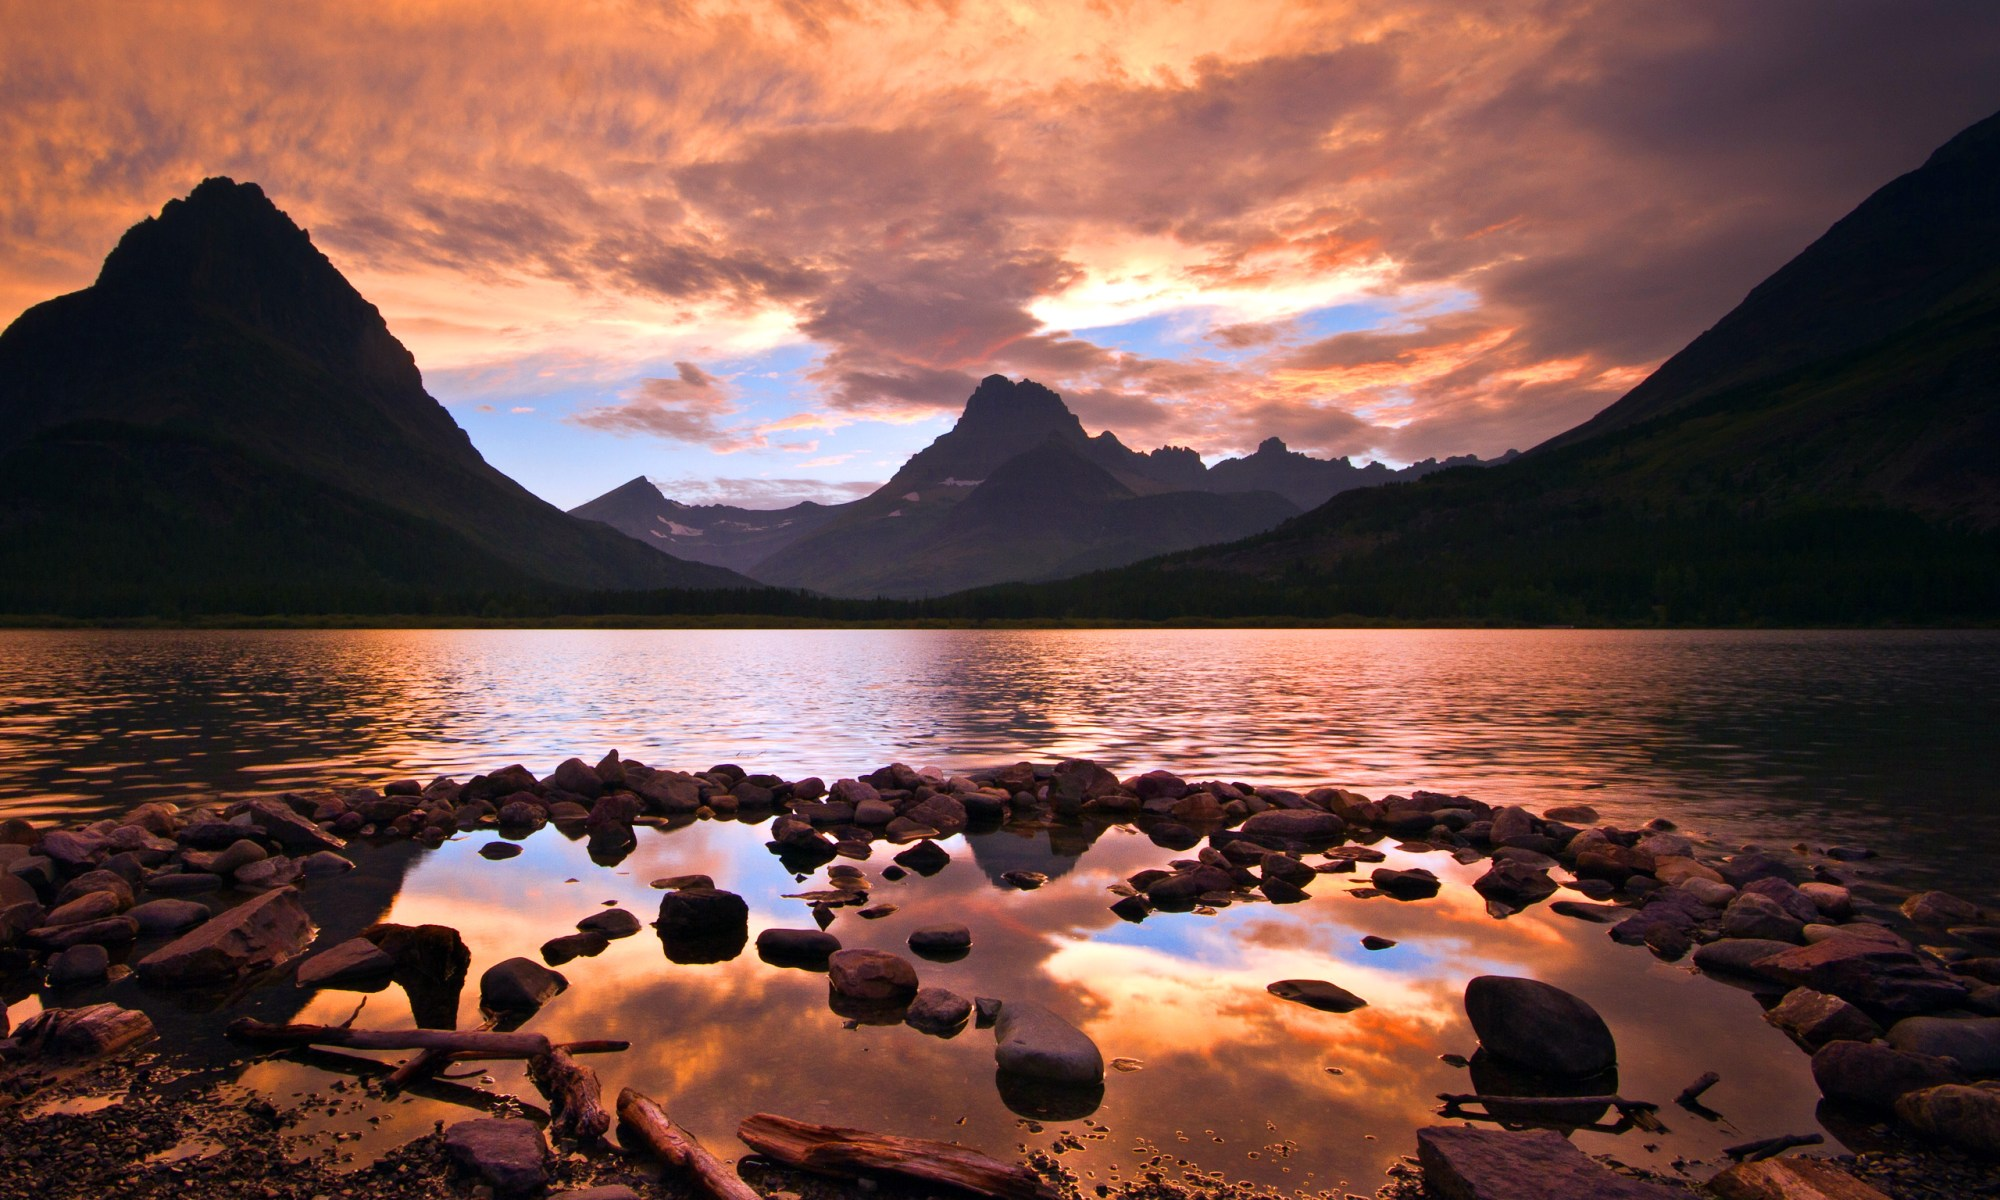 Sunset in Glacier National Park at Lake McDonald